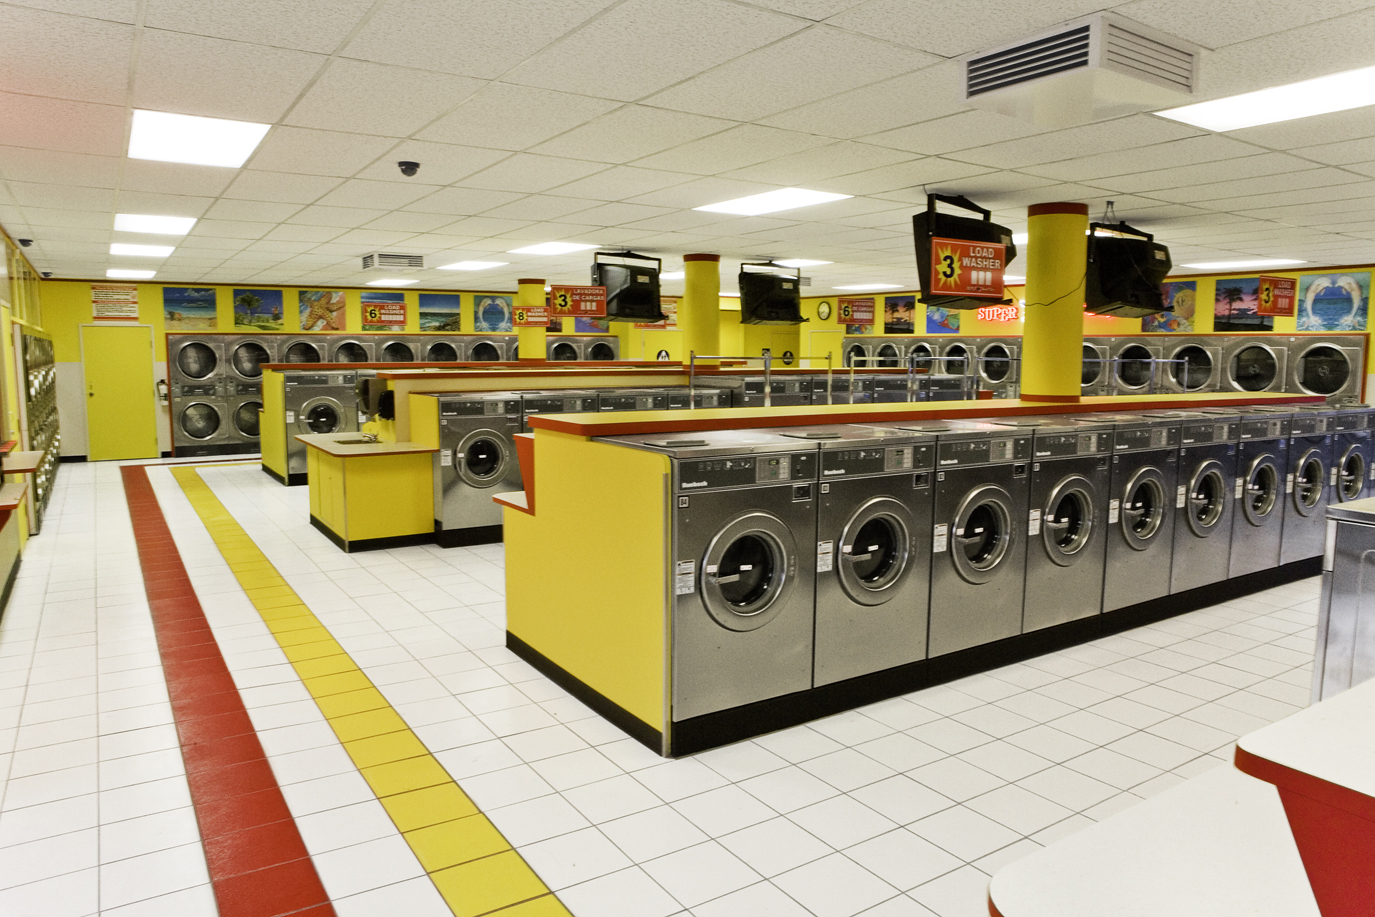 Own A Brand New Coin Laundry Lake Forest Area! | BIZ ...